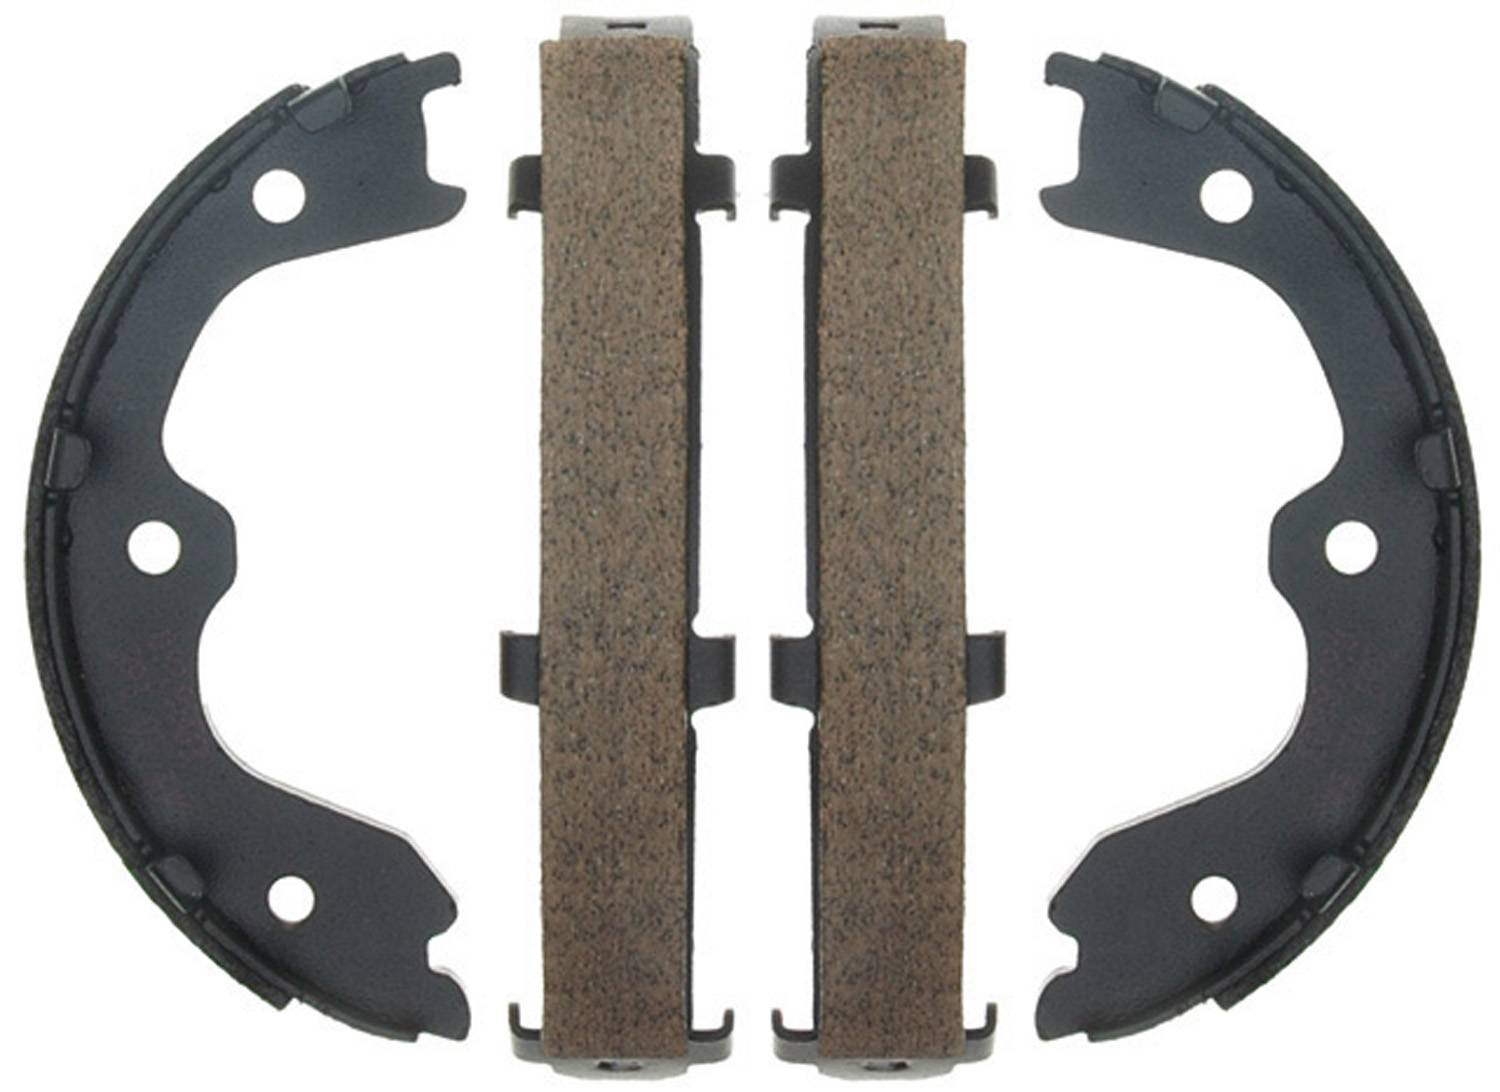 ACDELCO PROFESSIONAL BRAKES - Bonded Parking Brake Shoe (Rear) - ADU 17783B